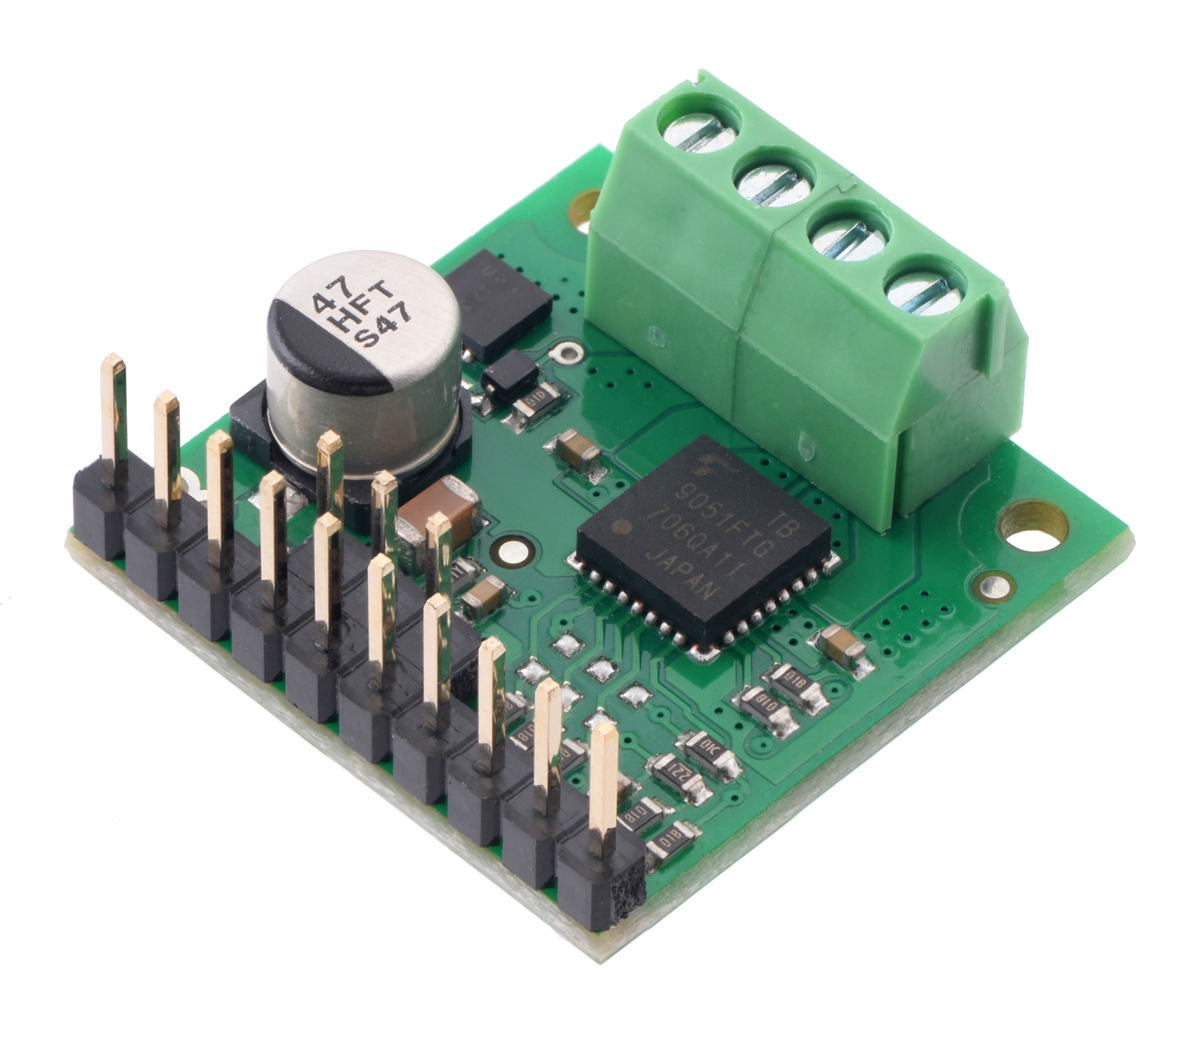 Pololu Tb9051ftg Single Brushed Dc Motor Driver Carrier Wiring Installation Coastal Source You Can Also Solder Your Leads And Other Connections Directly To The Board For Most Compact